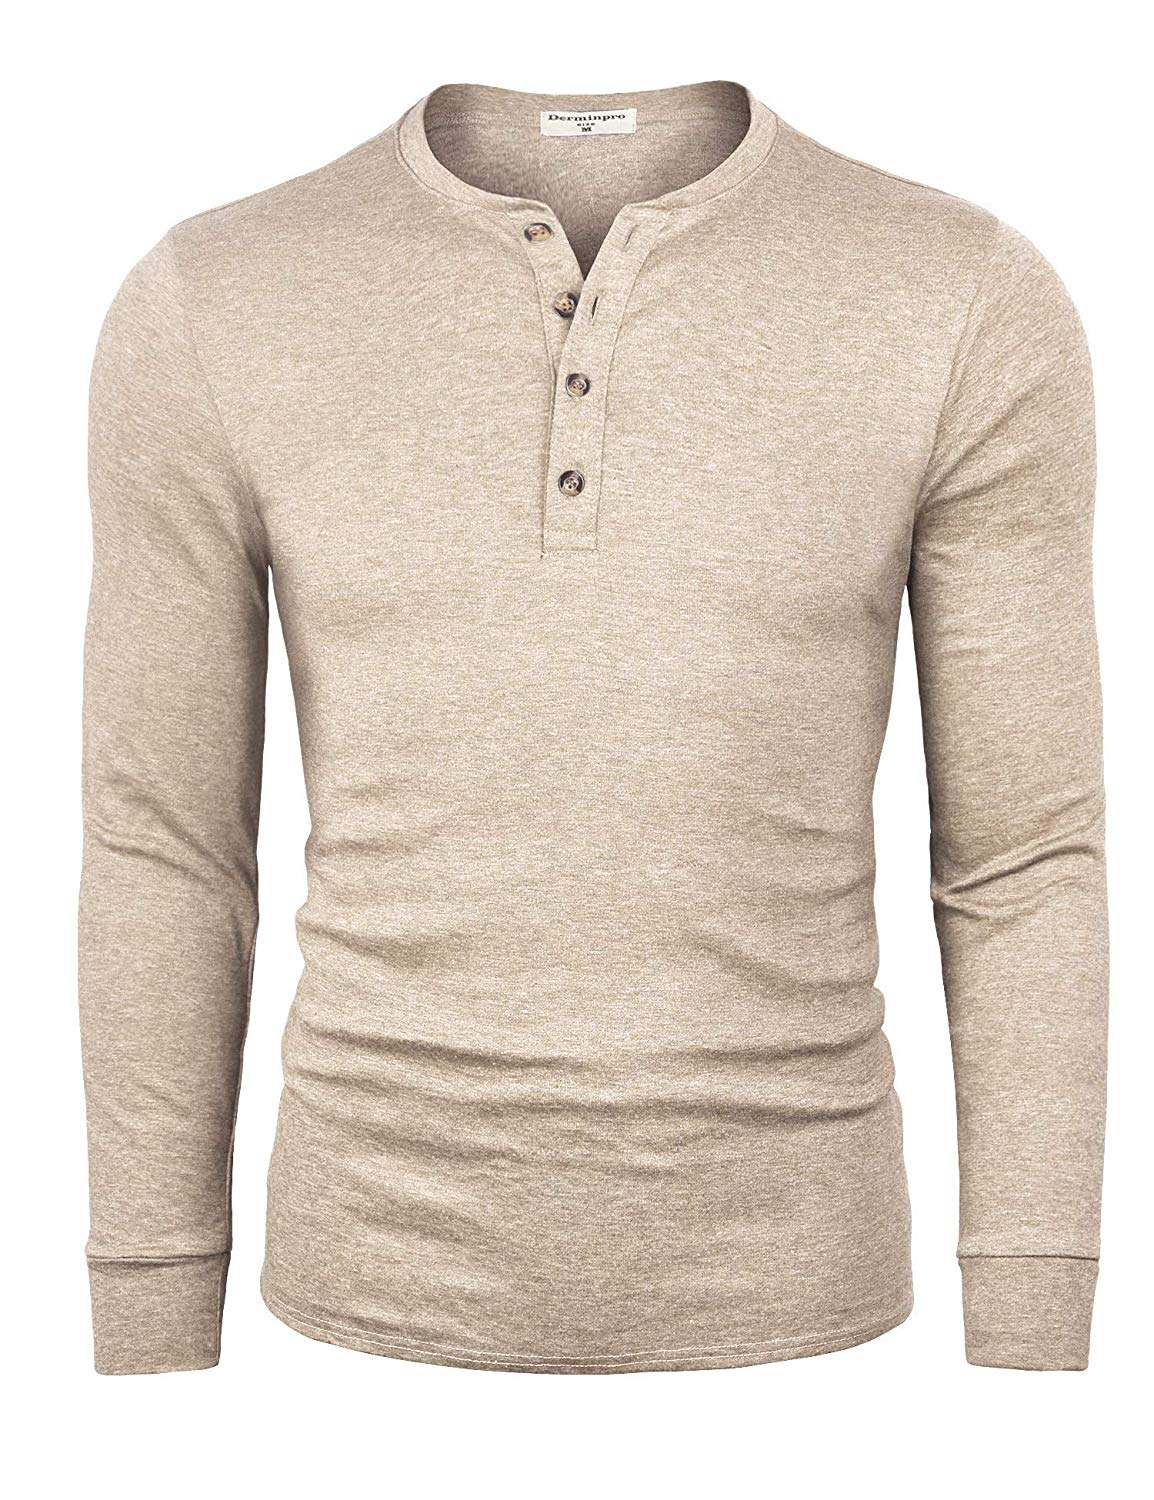 M220100 Men's Cotton Casual Long Sleeve Lightweight Basic Thermal T Shirts - 2